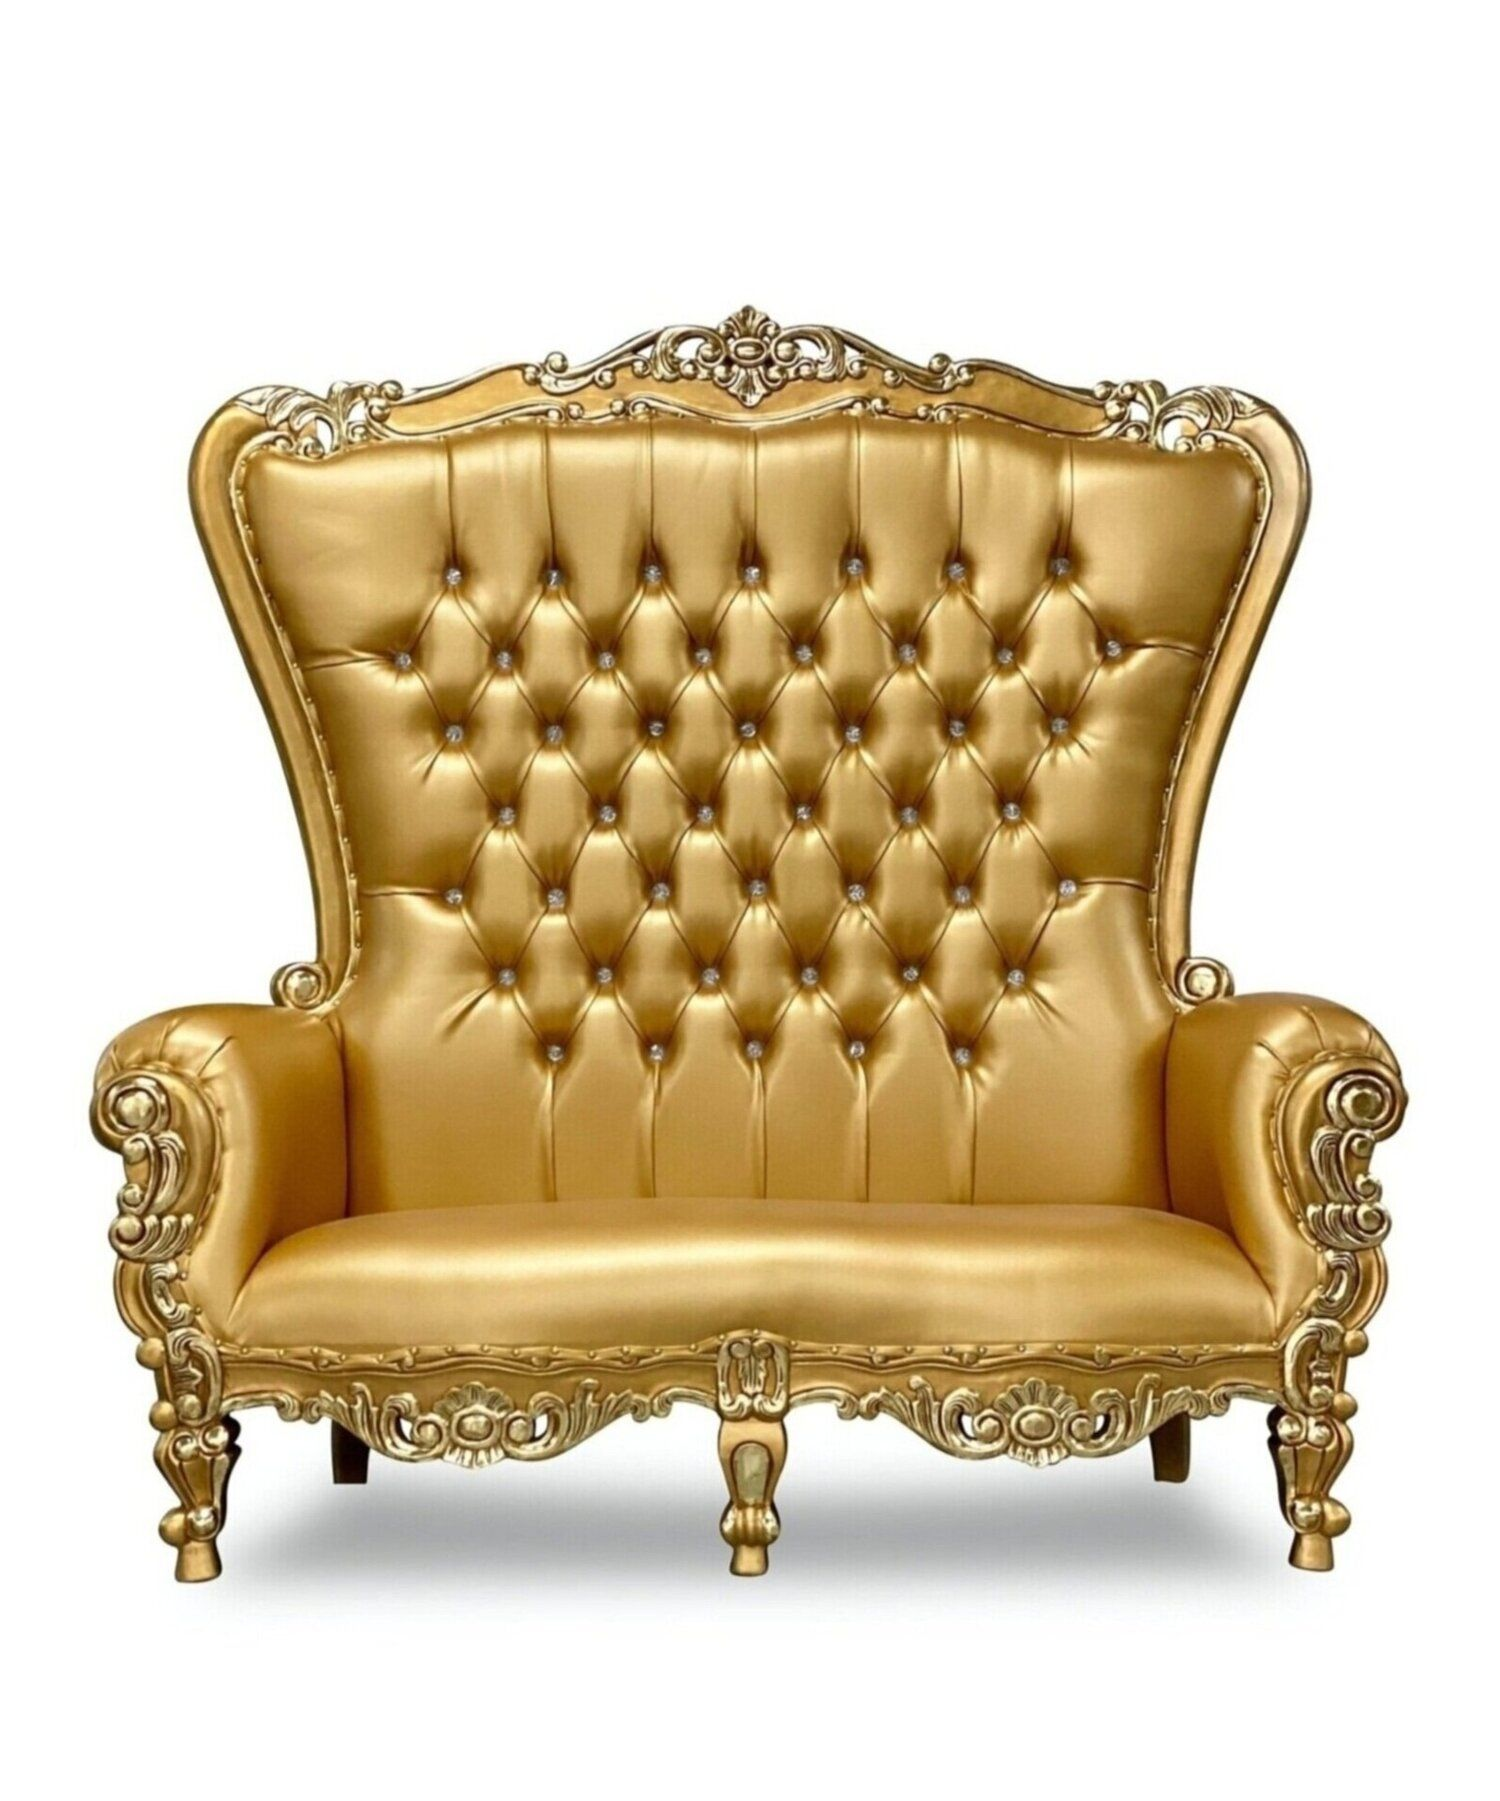 70 Og Throne Settee In 2020 High Back Chairs Throne Chair